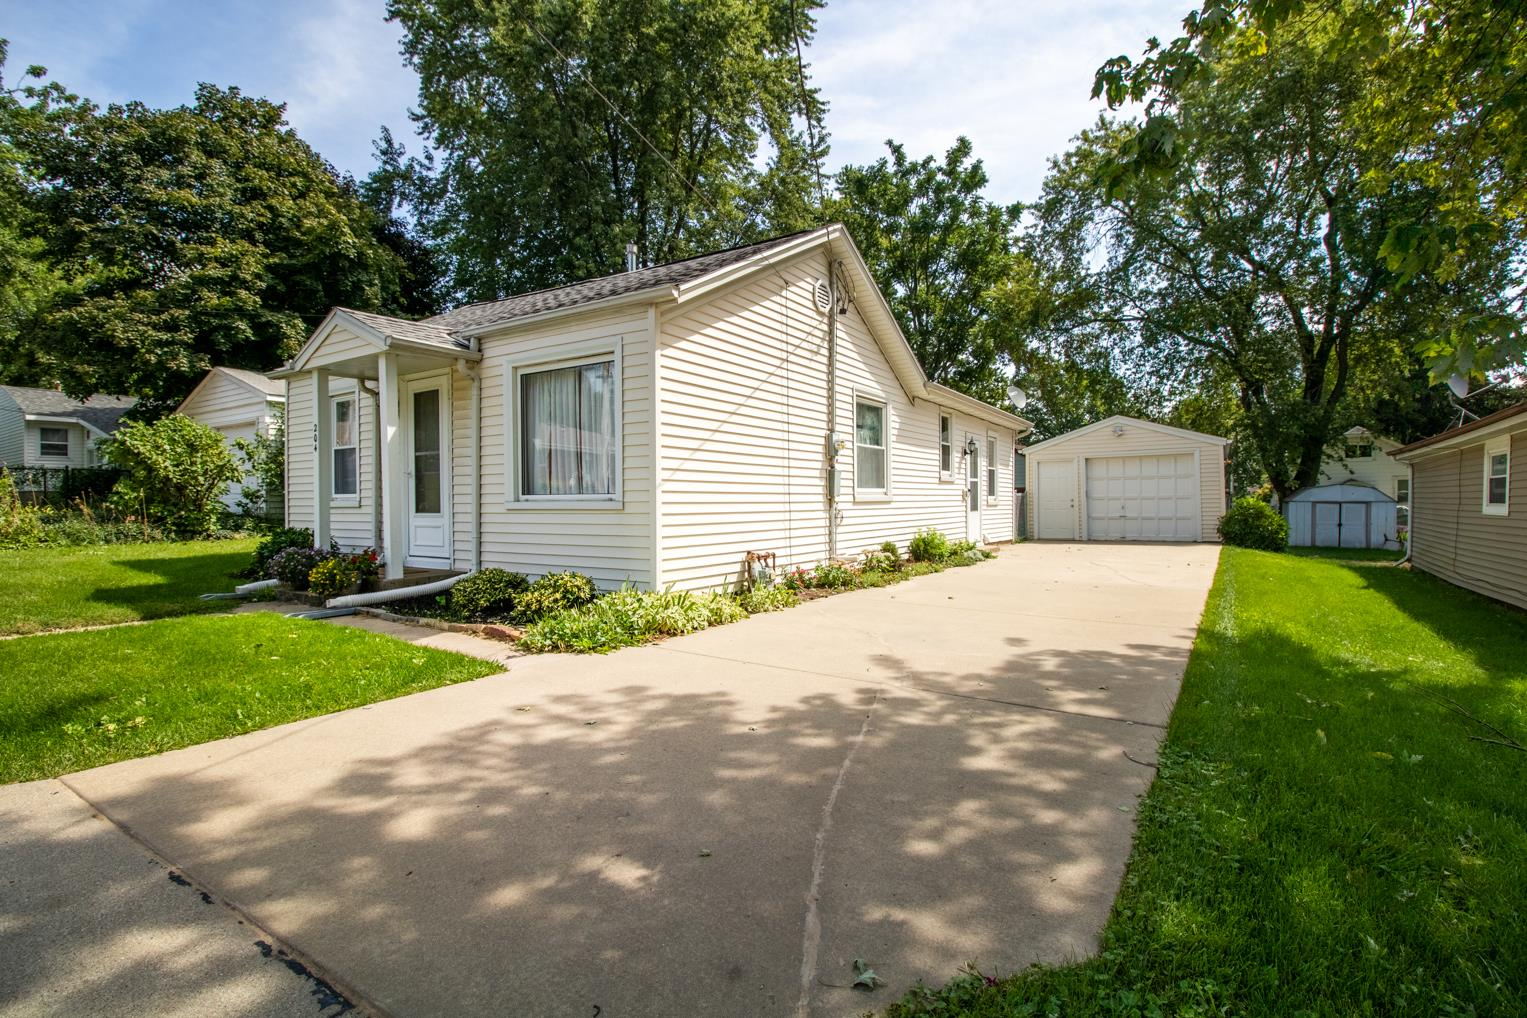 204 Keiser Avenue, Normal, IL 61761 - #: 10798429